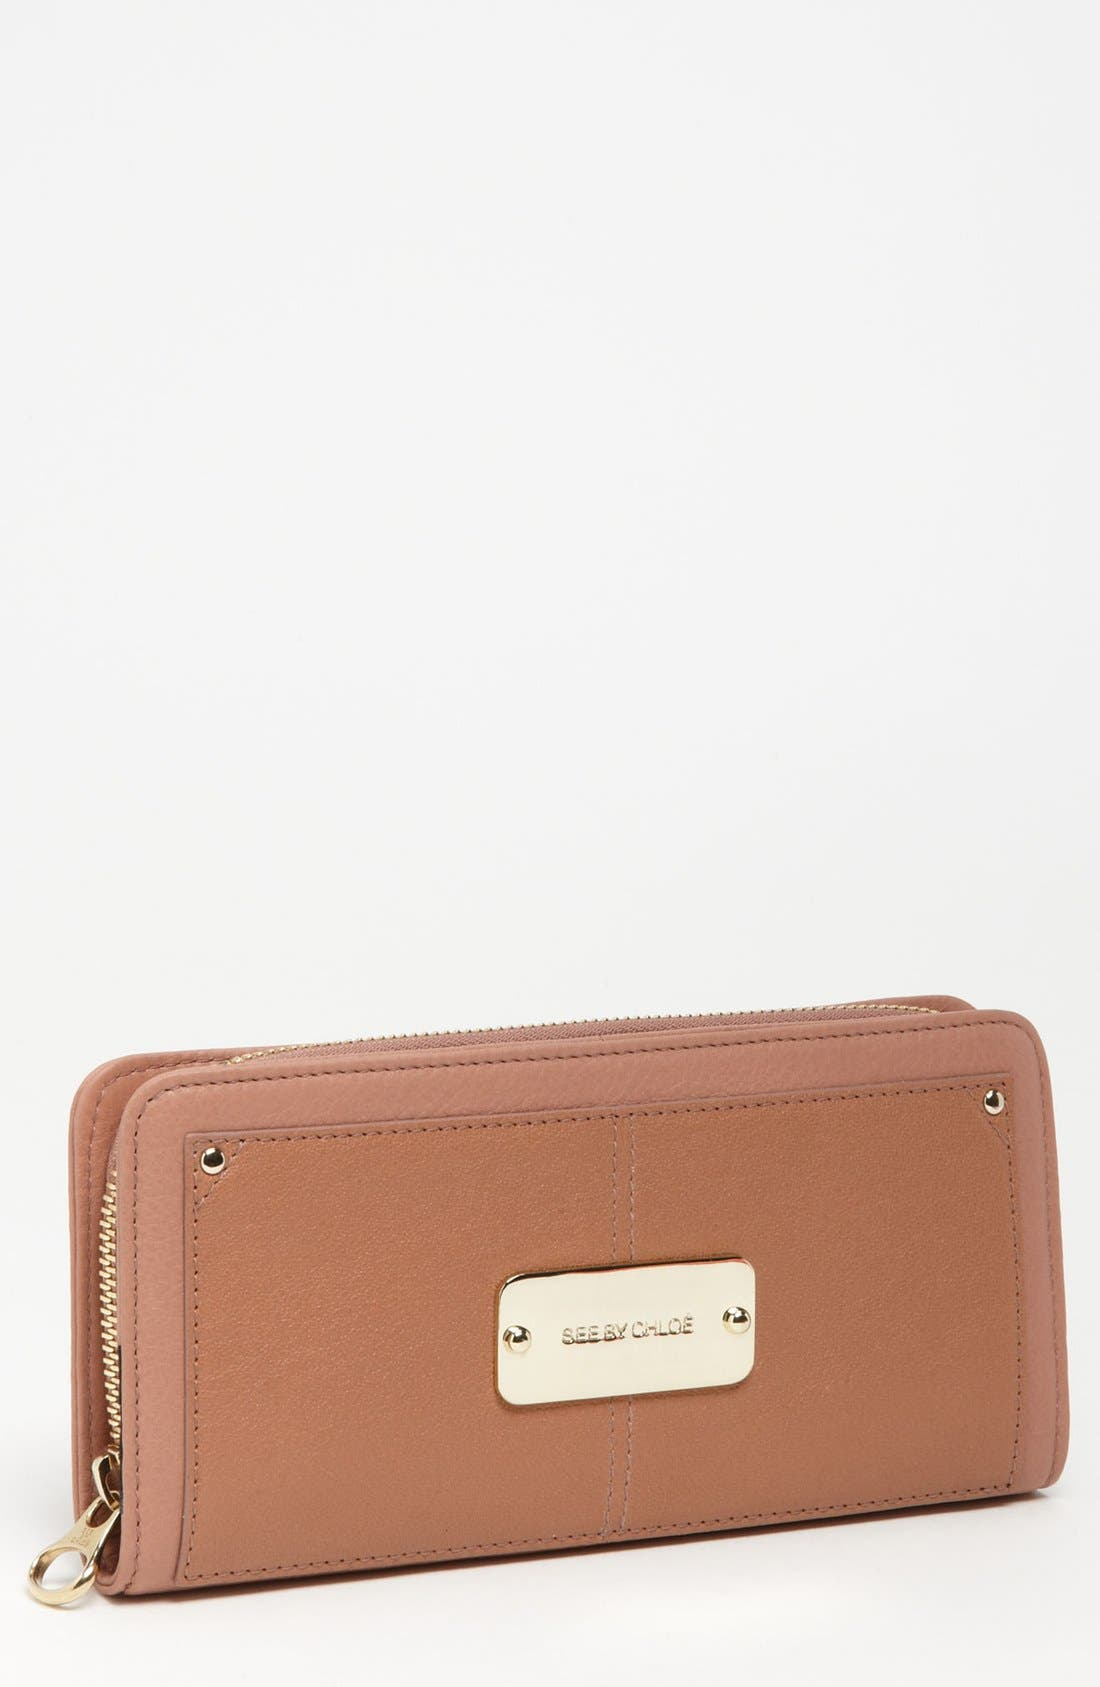 Alternate Image 1 Selected - See by Chloé 'Nellie' Continental Wallet